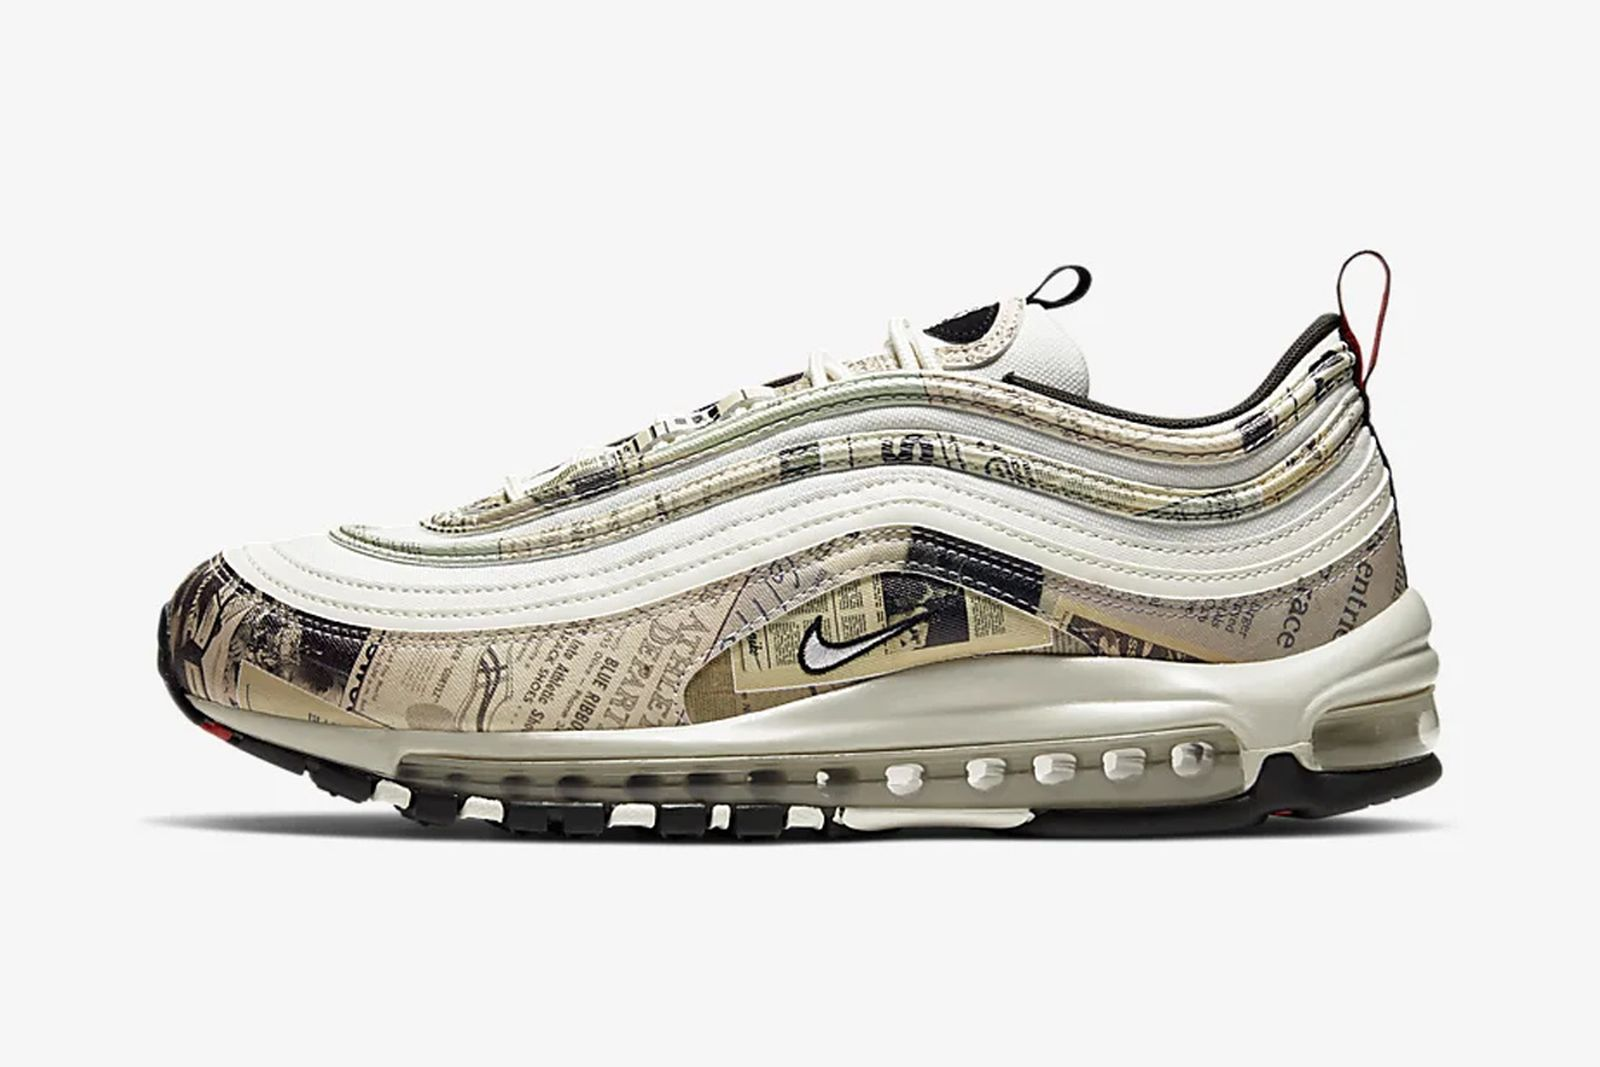 This Nike Air Max 97 Features a Photo of Another Brand's Sneaker